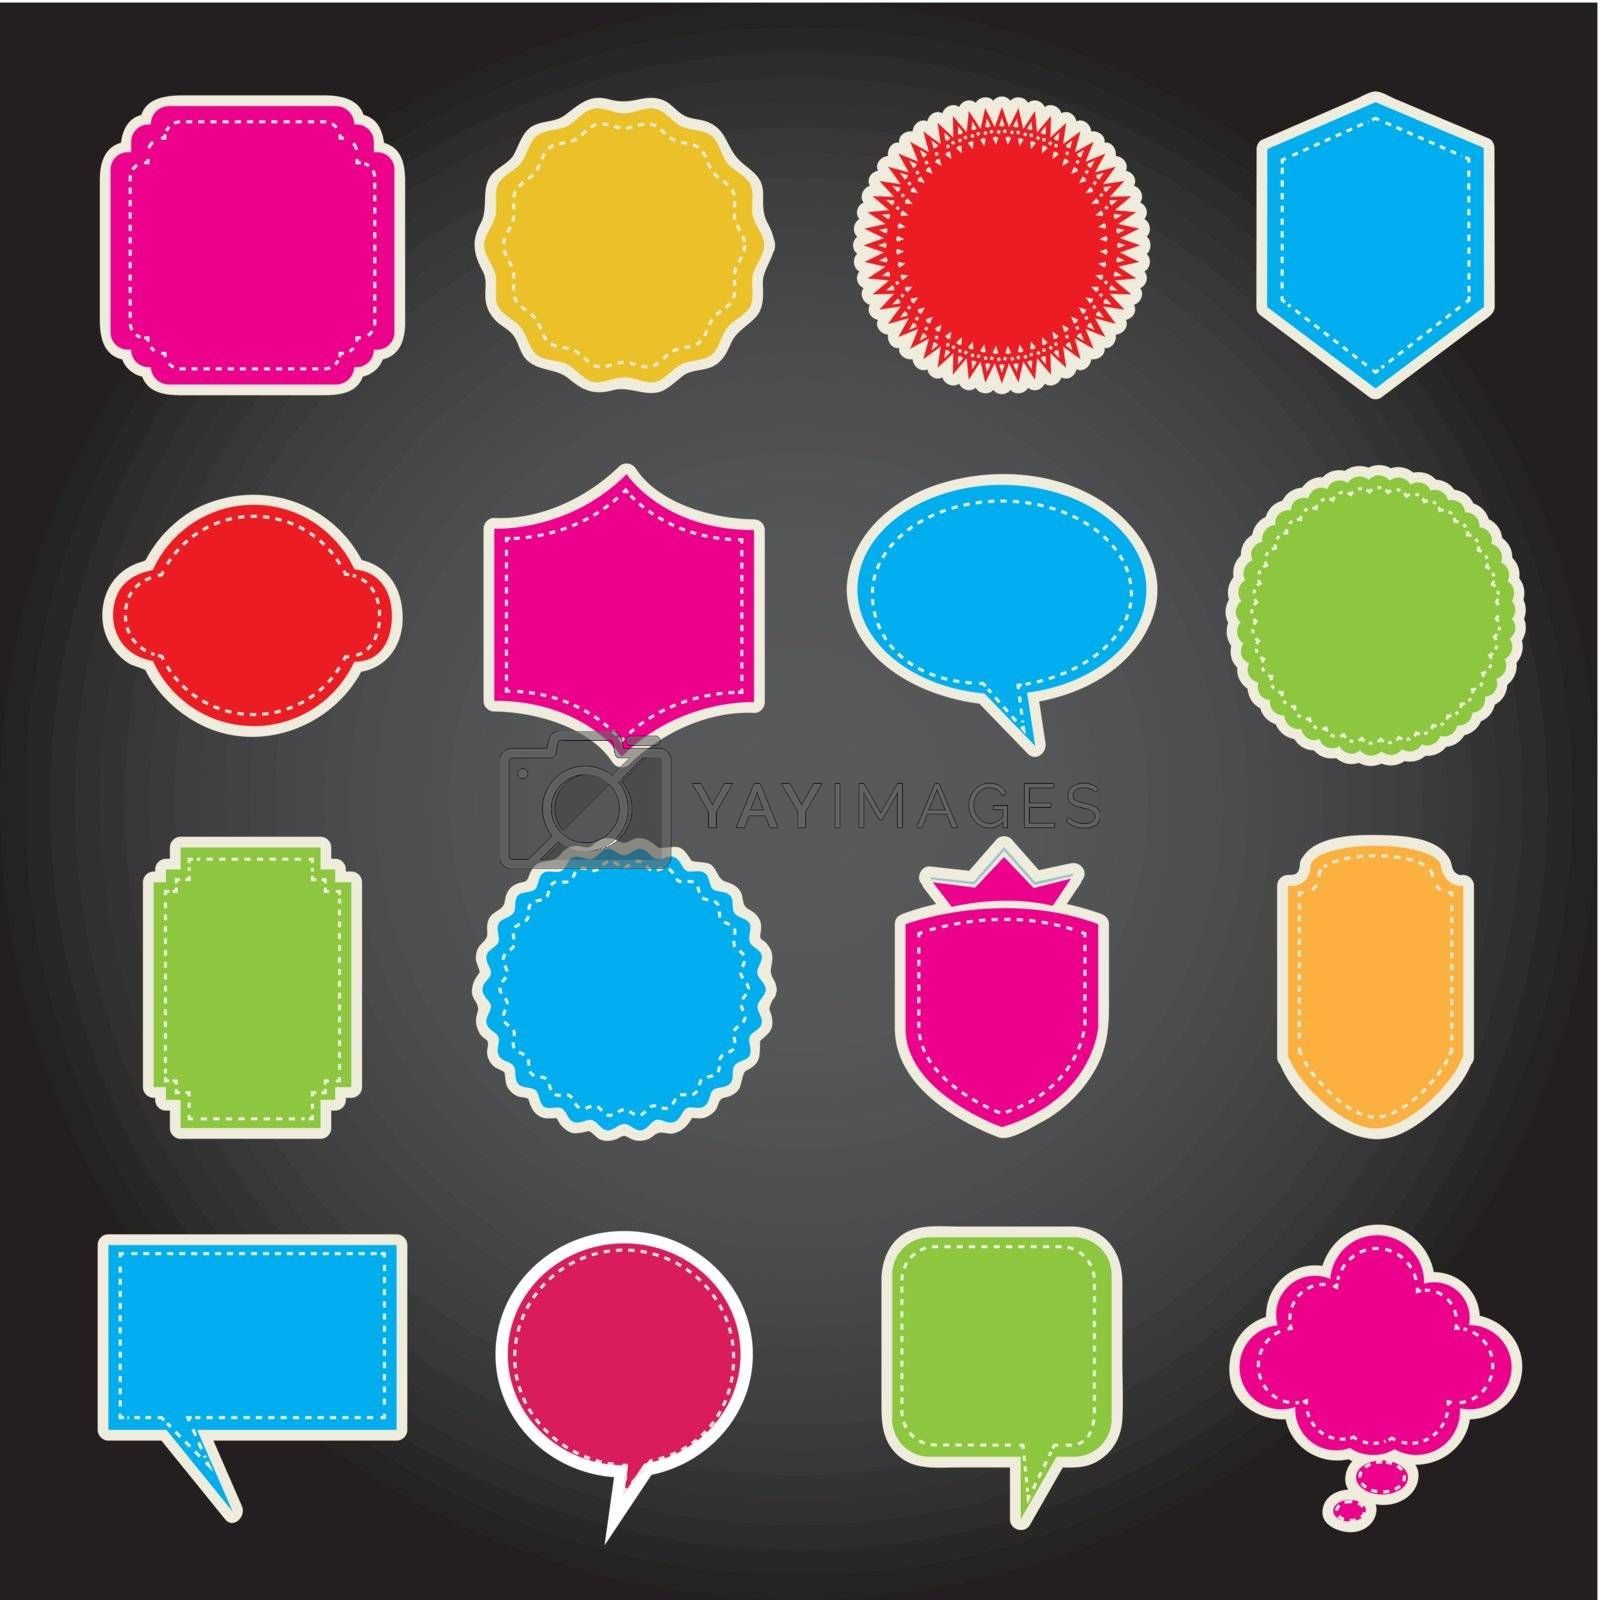 colorful balloons text over black background. vector illustration